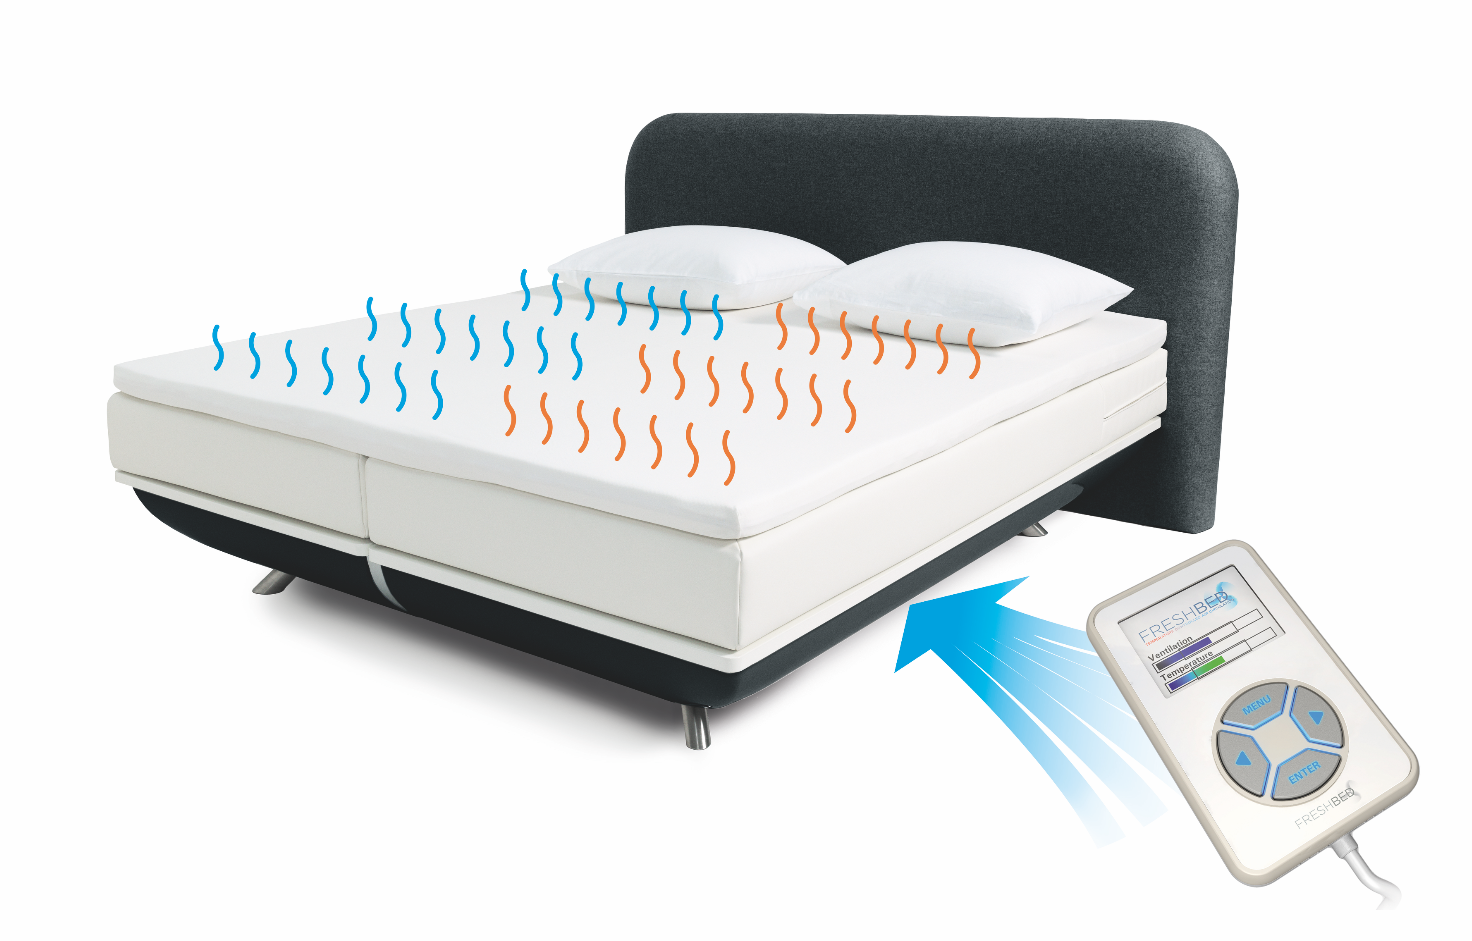 Innovative Sleep System Asian Hotel Amp Catering Times